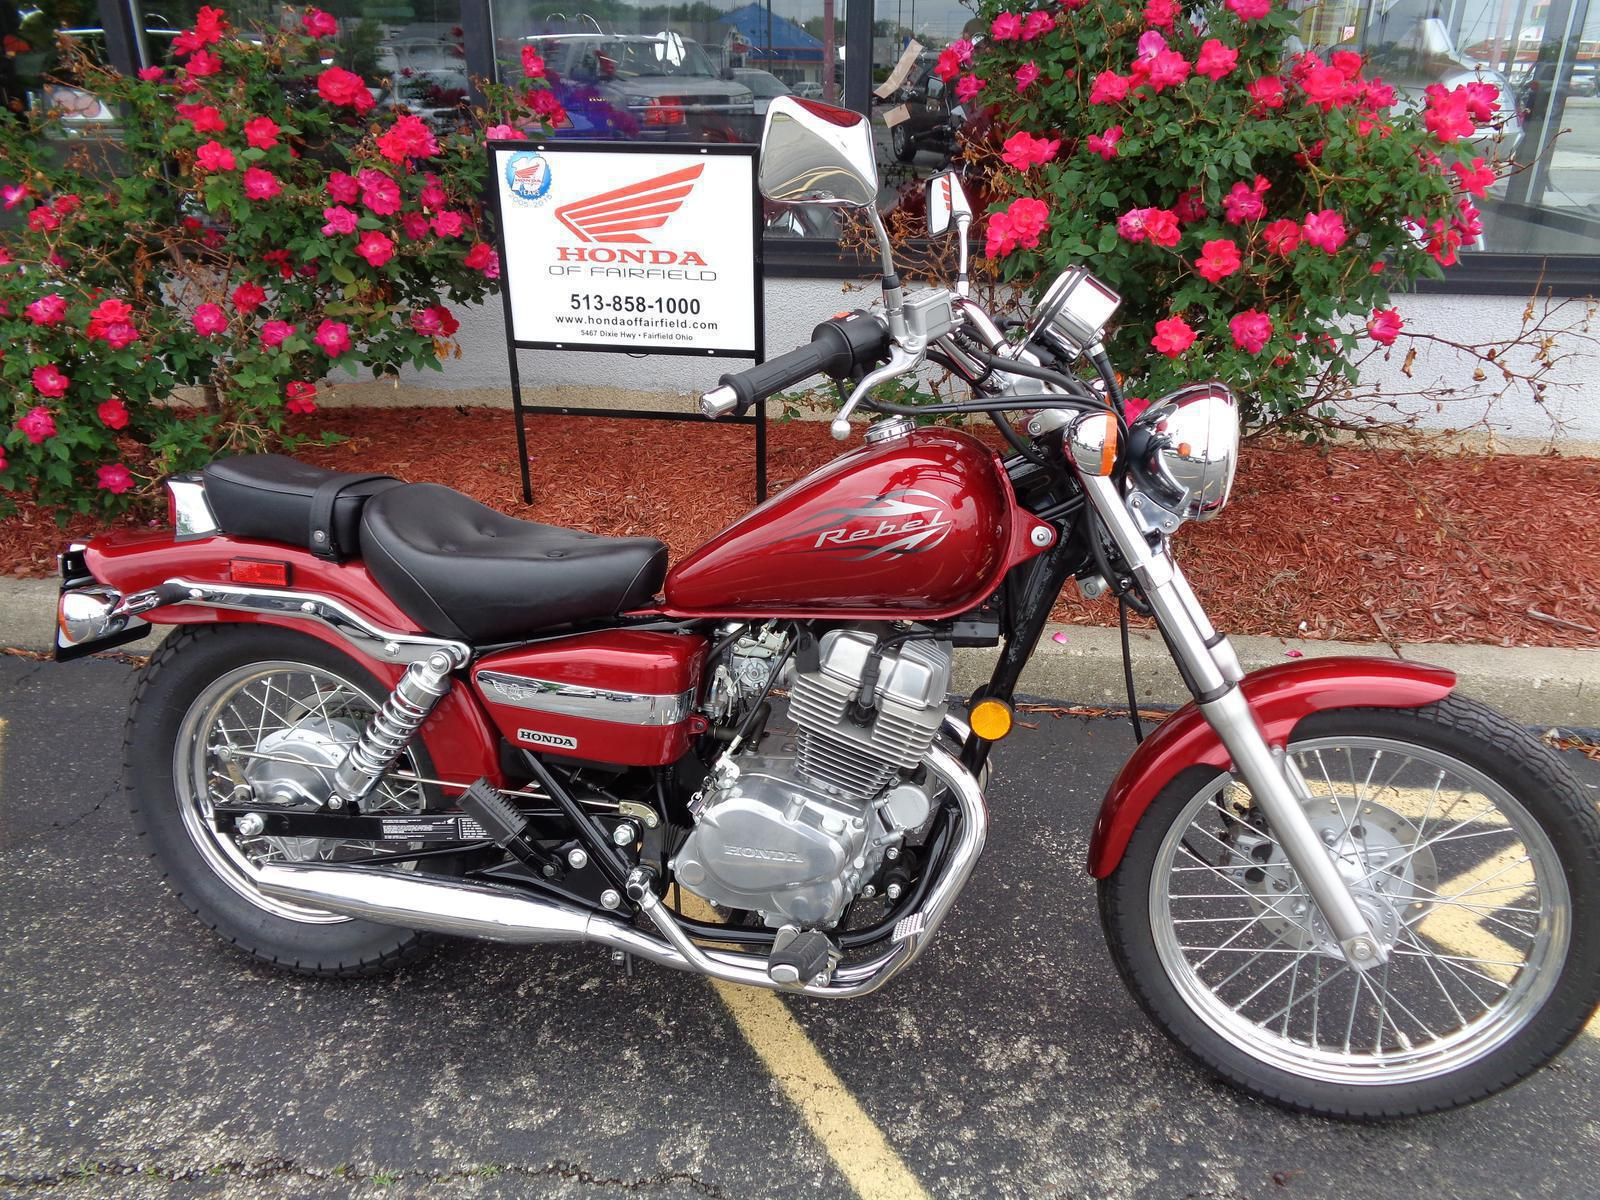 2014 Supply Honda Motorcycles Transaction Price REBEL   CMX250C, New And  Used Motorcycles Prices And